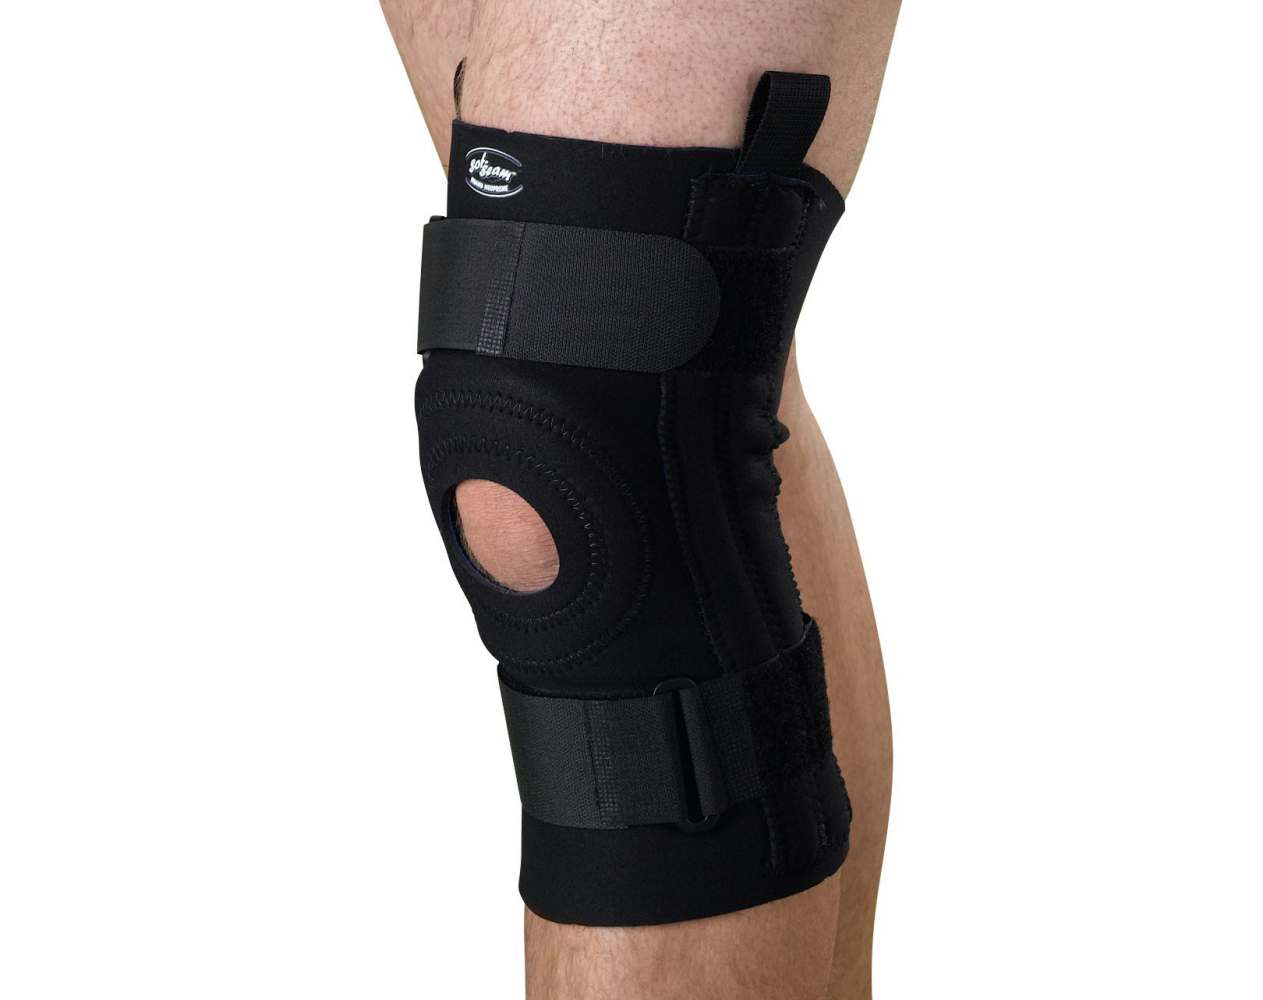 Medline Knee Supports with Removable U-Buttress - w/ U-Butress, Lg, Each - Model ORT23230L